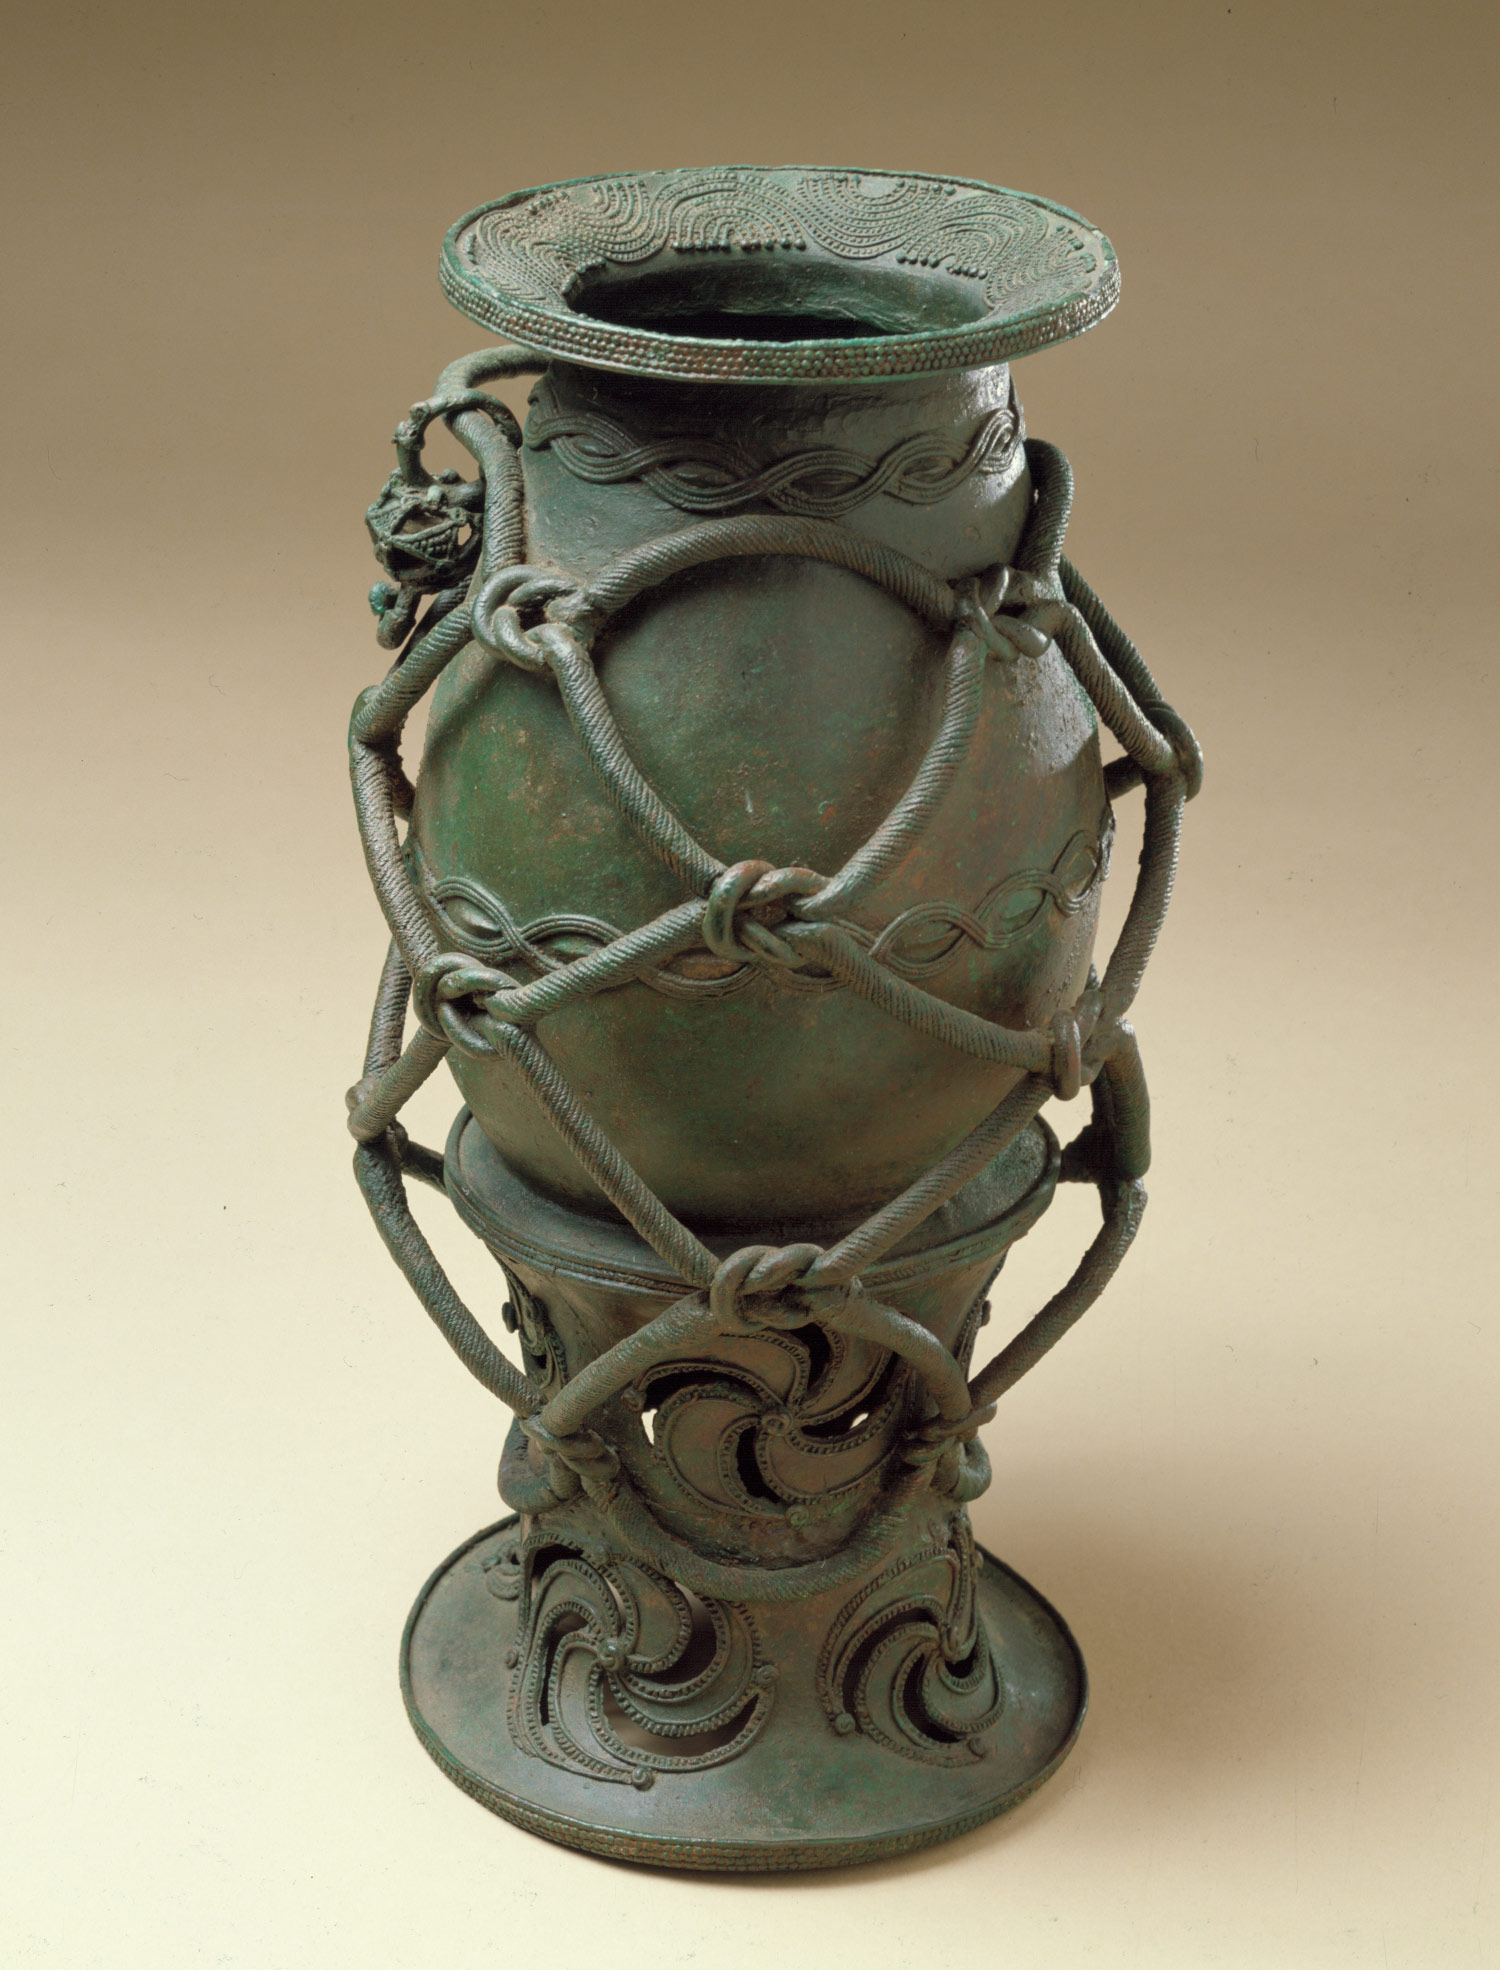 Roped Pot on a Stand: 9th-10th century